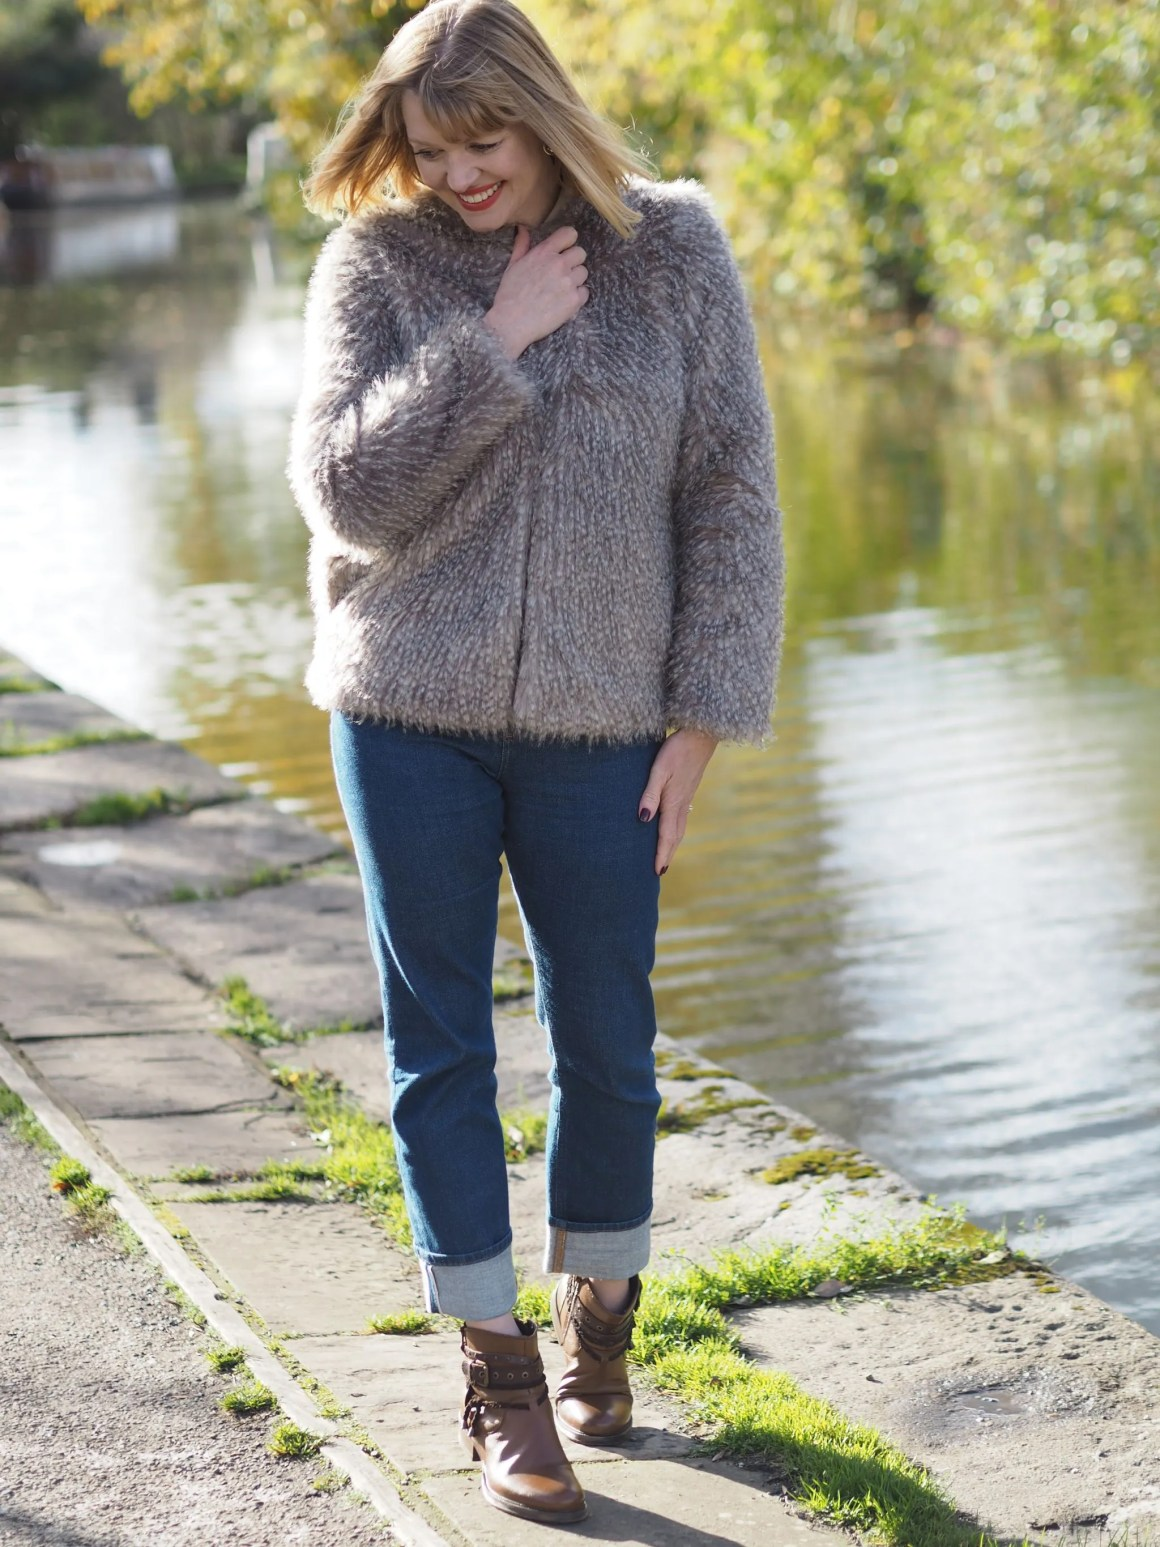 faux fur jacket girlfriend jeans biker boots skipton canal